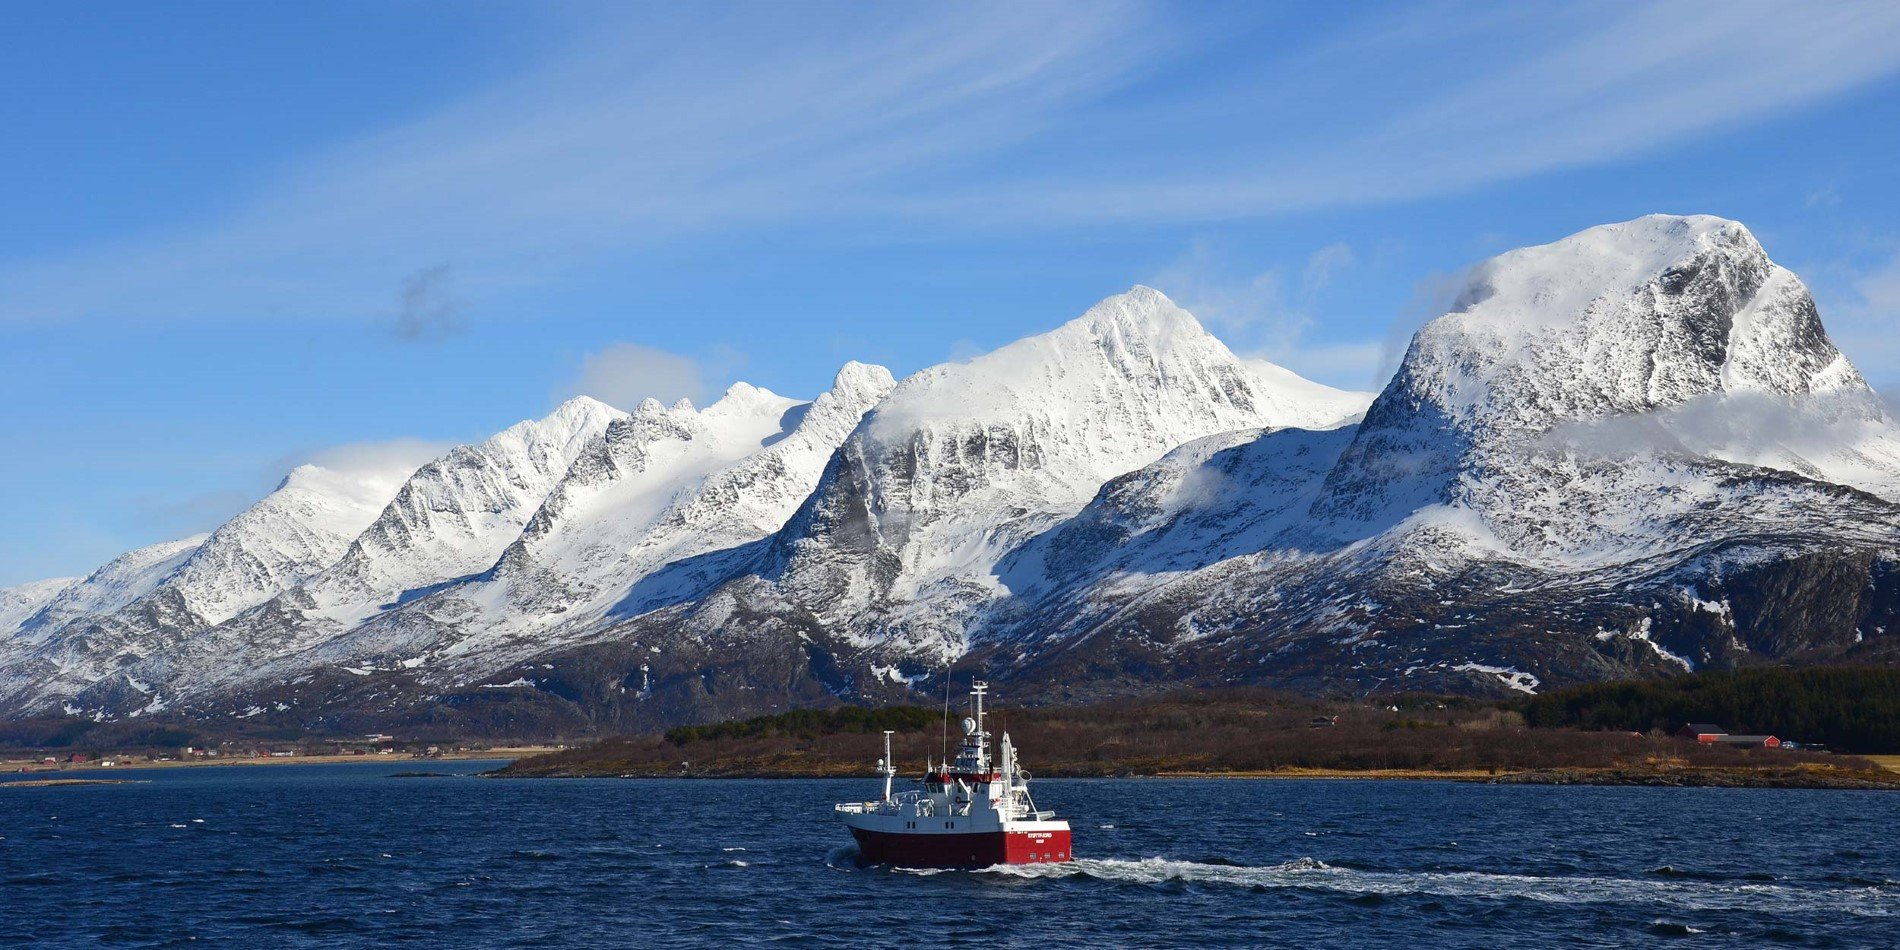 A fishing boat in front of the Seven Sisters mountain chain